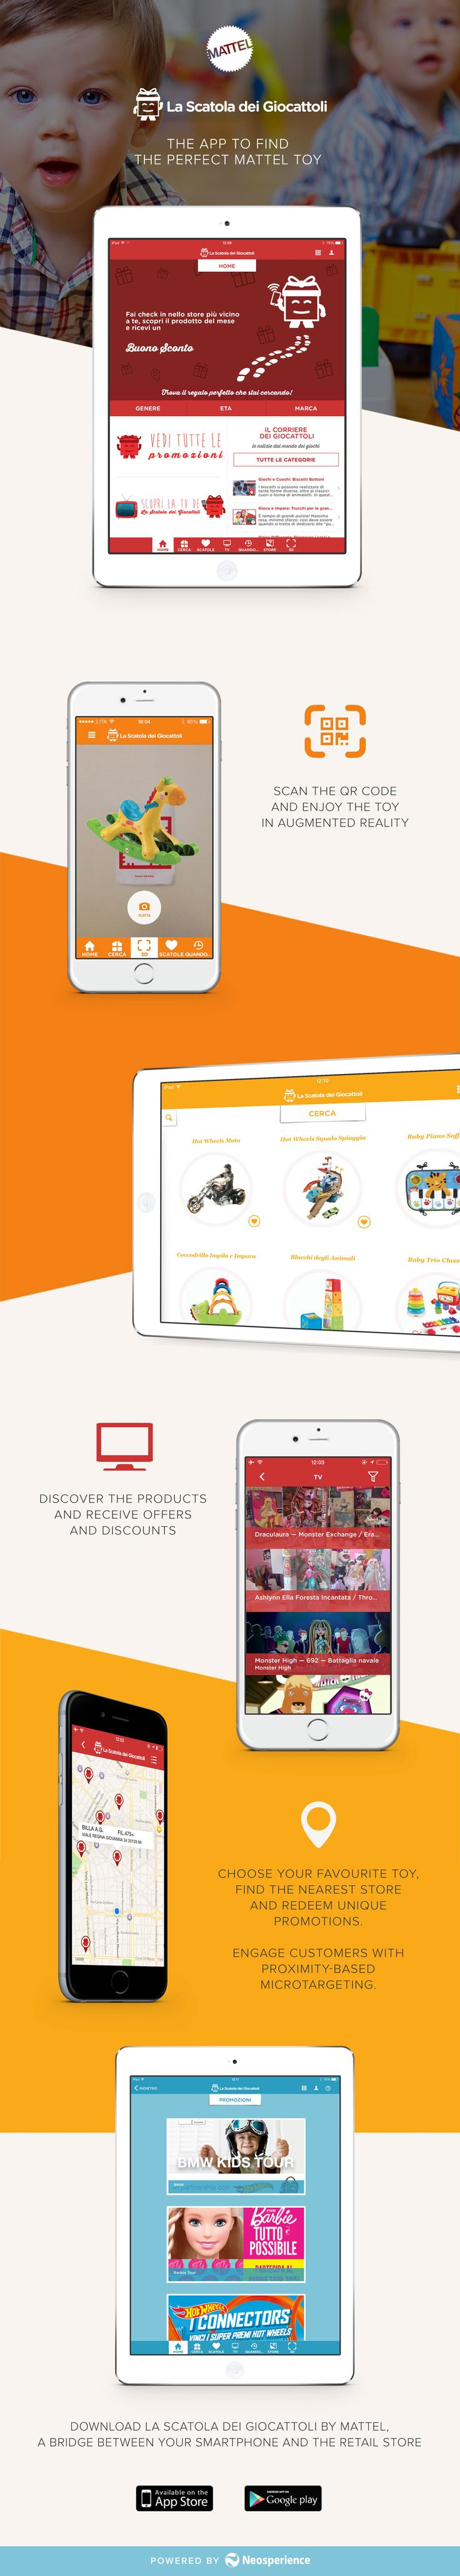 Mattel's La Scatola dei Giocattoli app, developed by Neosperience and renewed with Neosperience Engage, embraces the retail revolution where Apple's iBeacon technology is used to serve right-time content to nearby customers and increase conversion rates at brick-and-mortar stores.